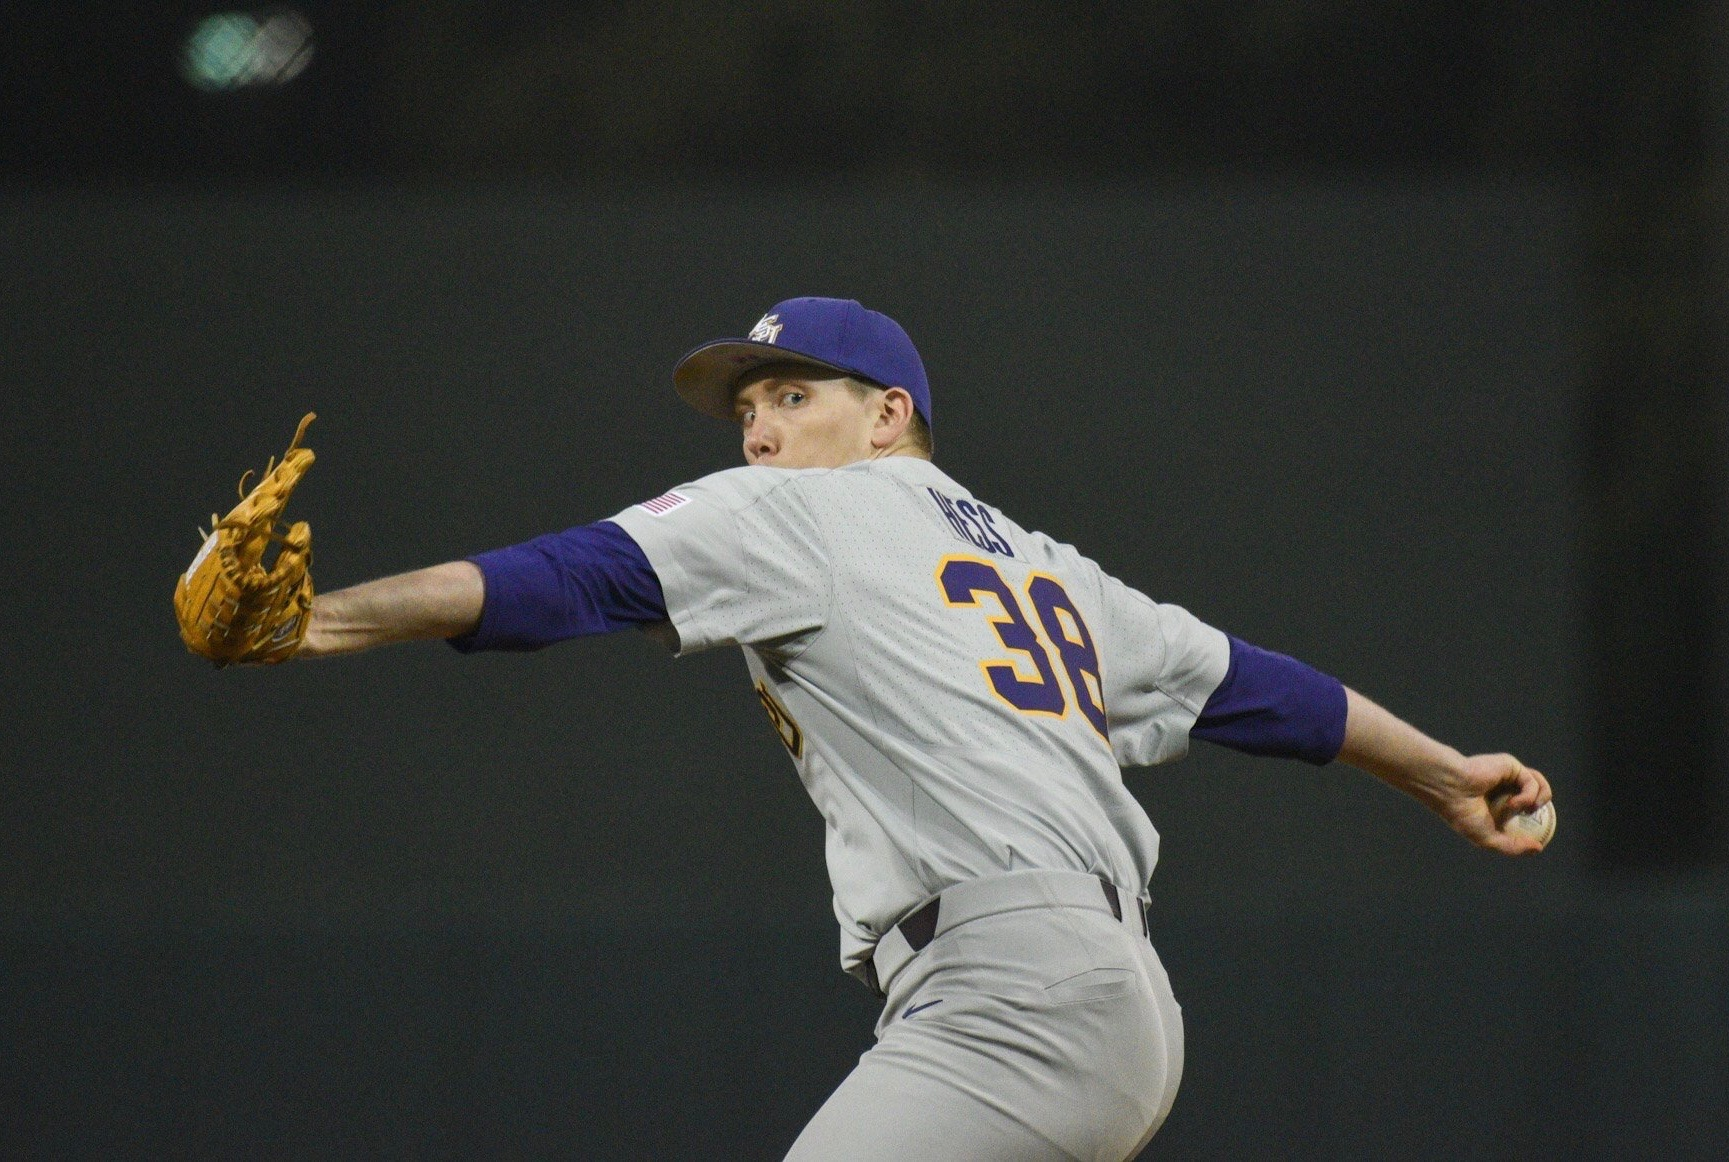 Baseball drops first game of the series to Texas